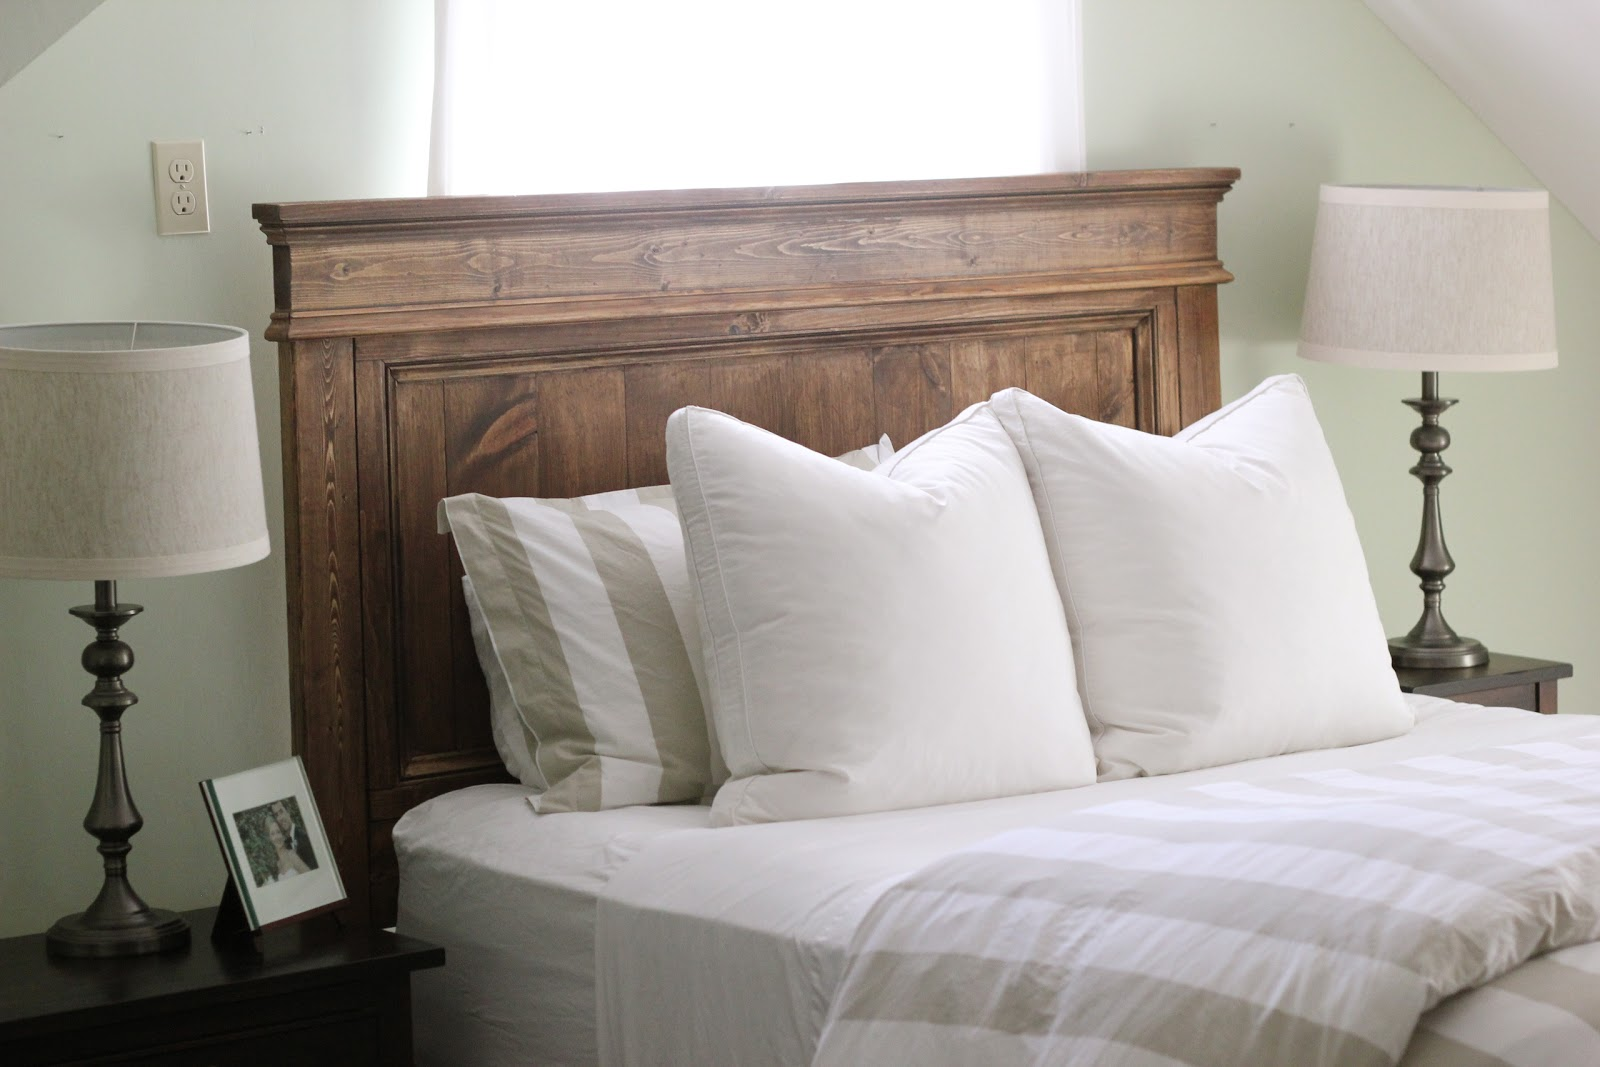 Jenny steffens hobick we built a bed diy wooden headboard for Makeshift headboard